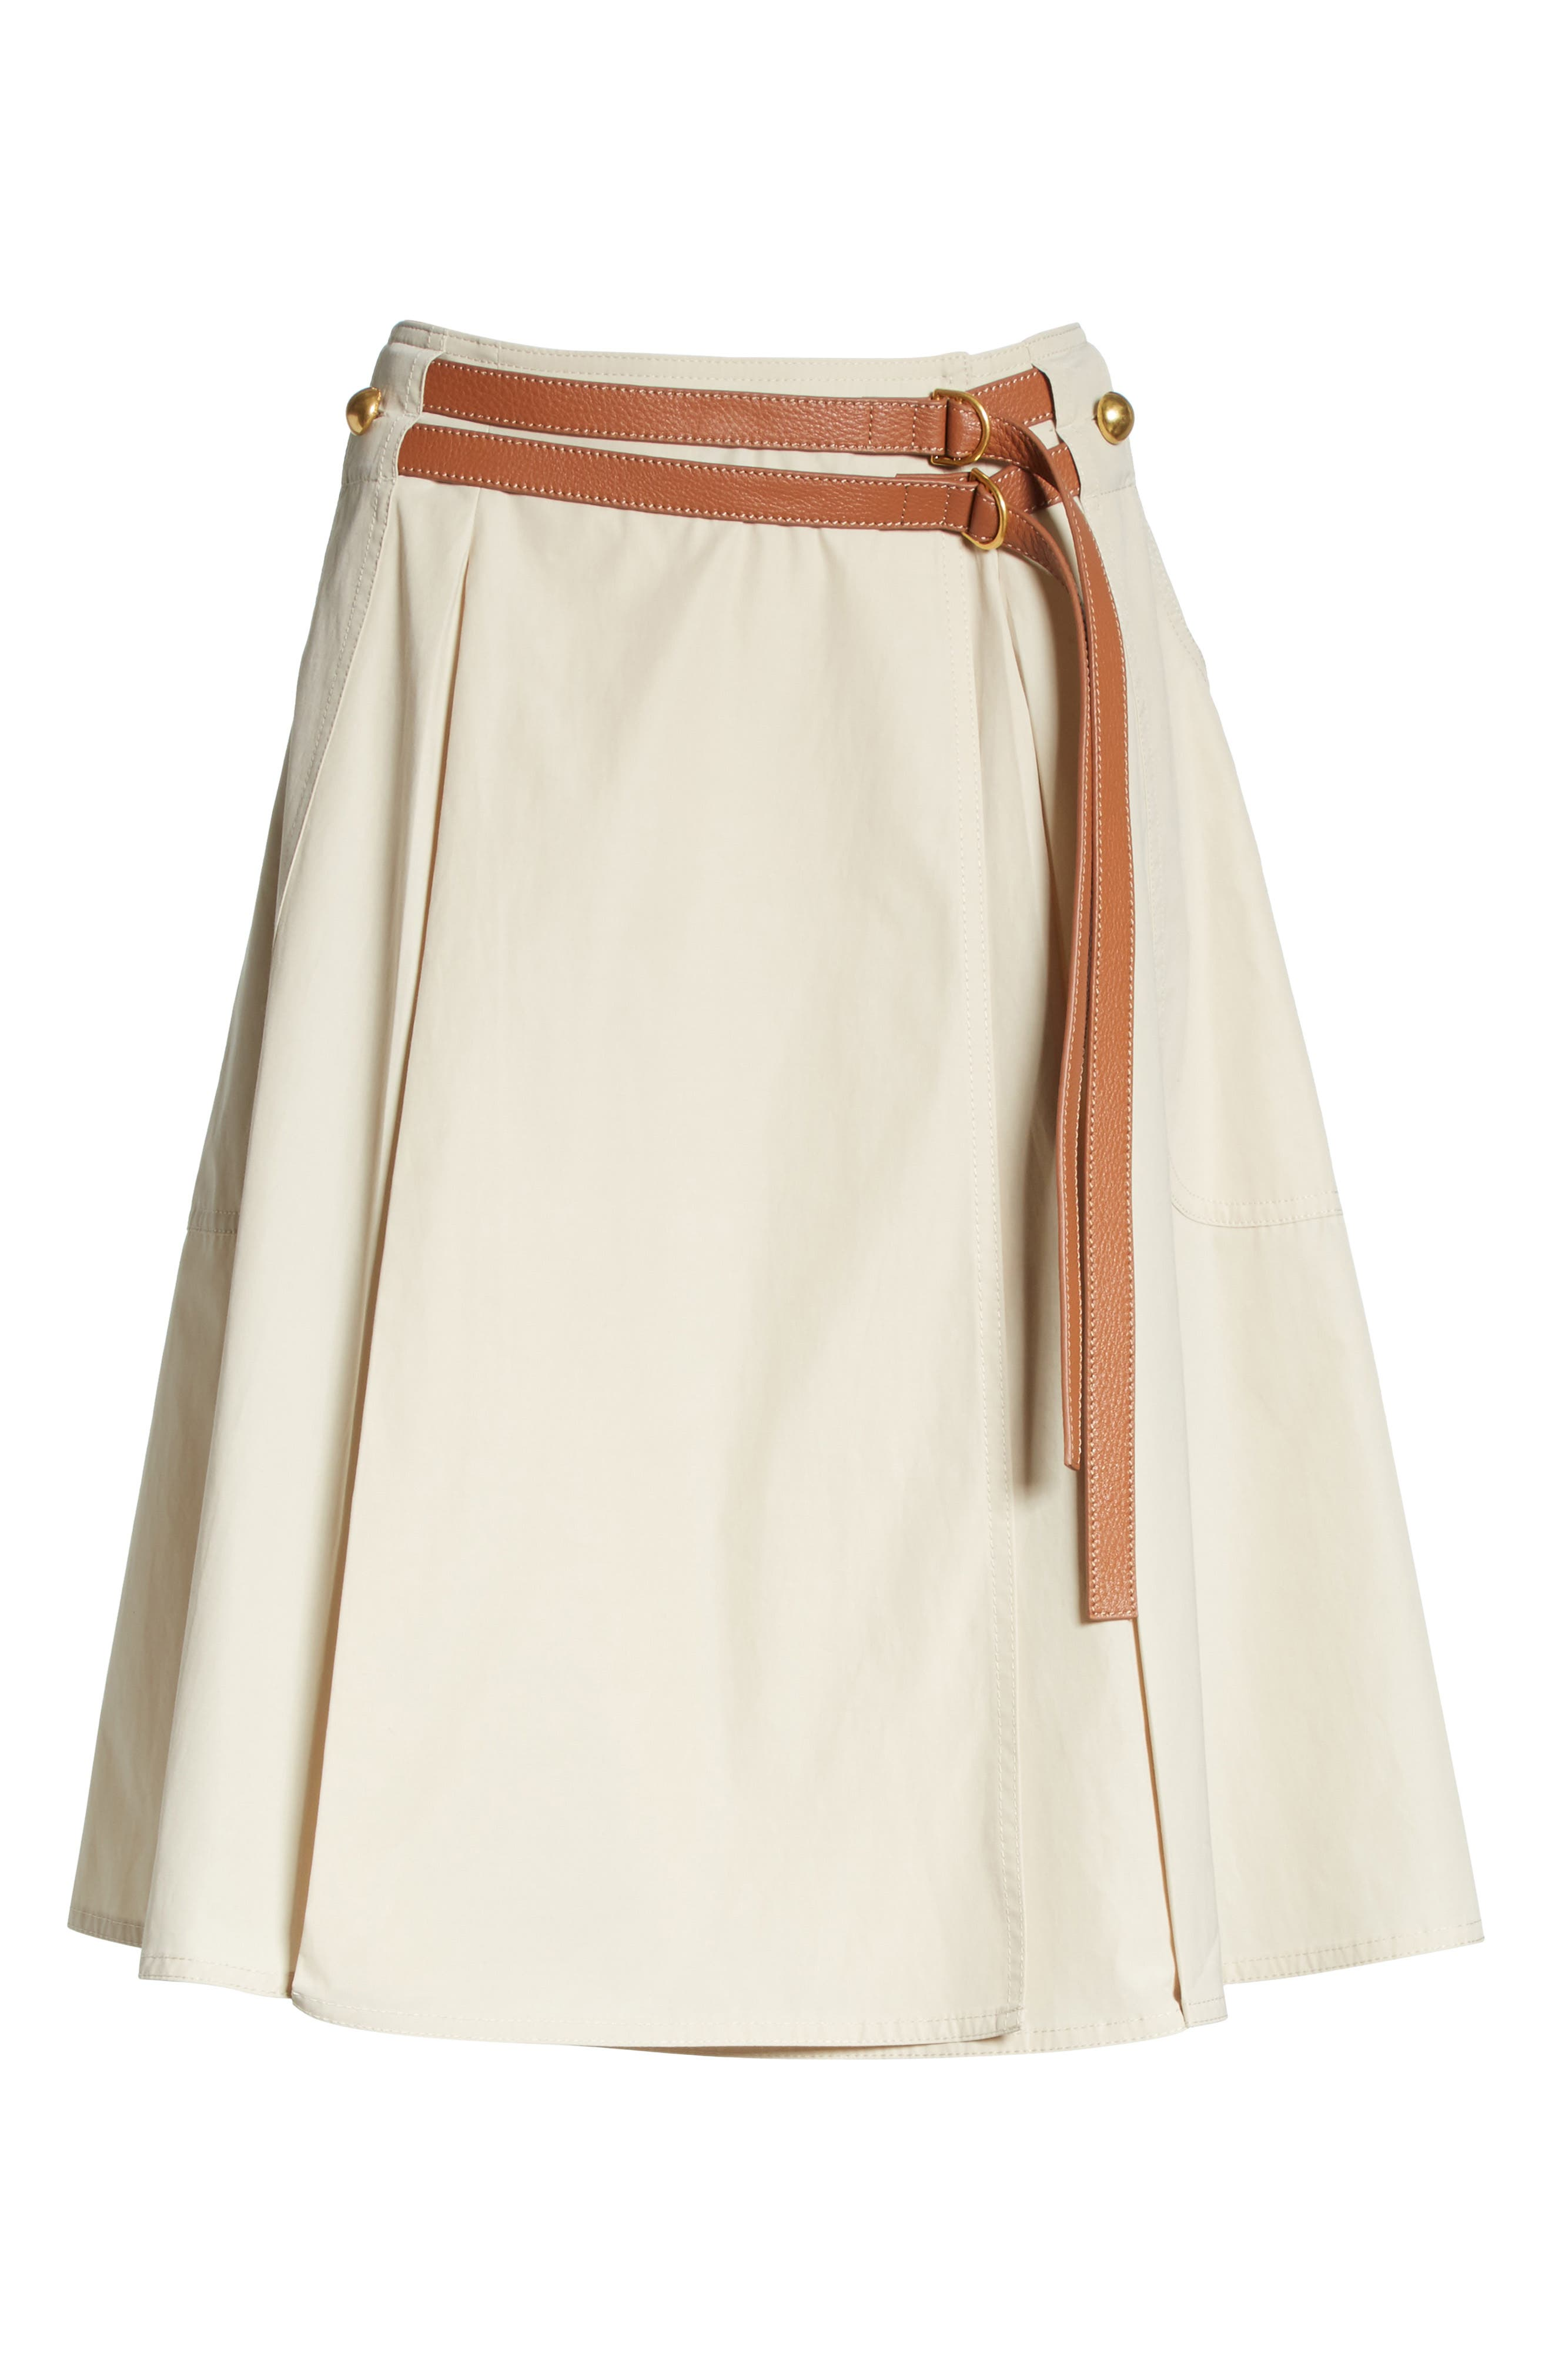 Betsy Belted Flare Skirt,                             Alternate thumbnail 6, color,                             053